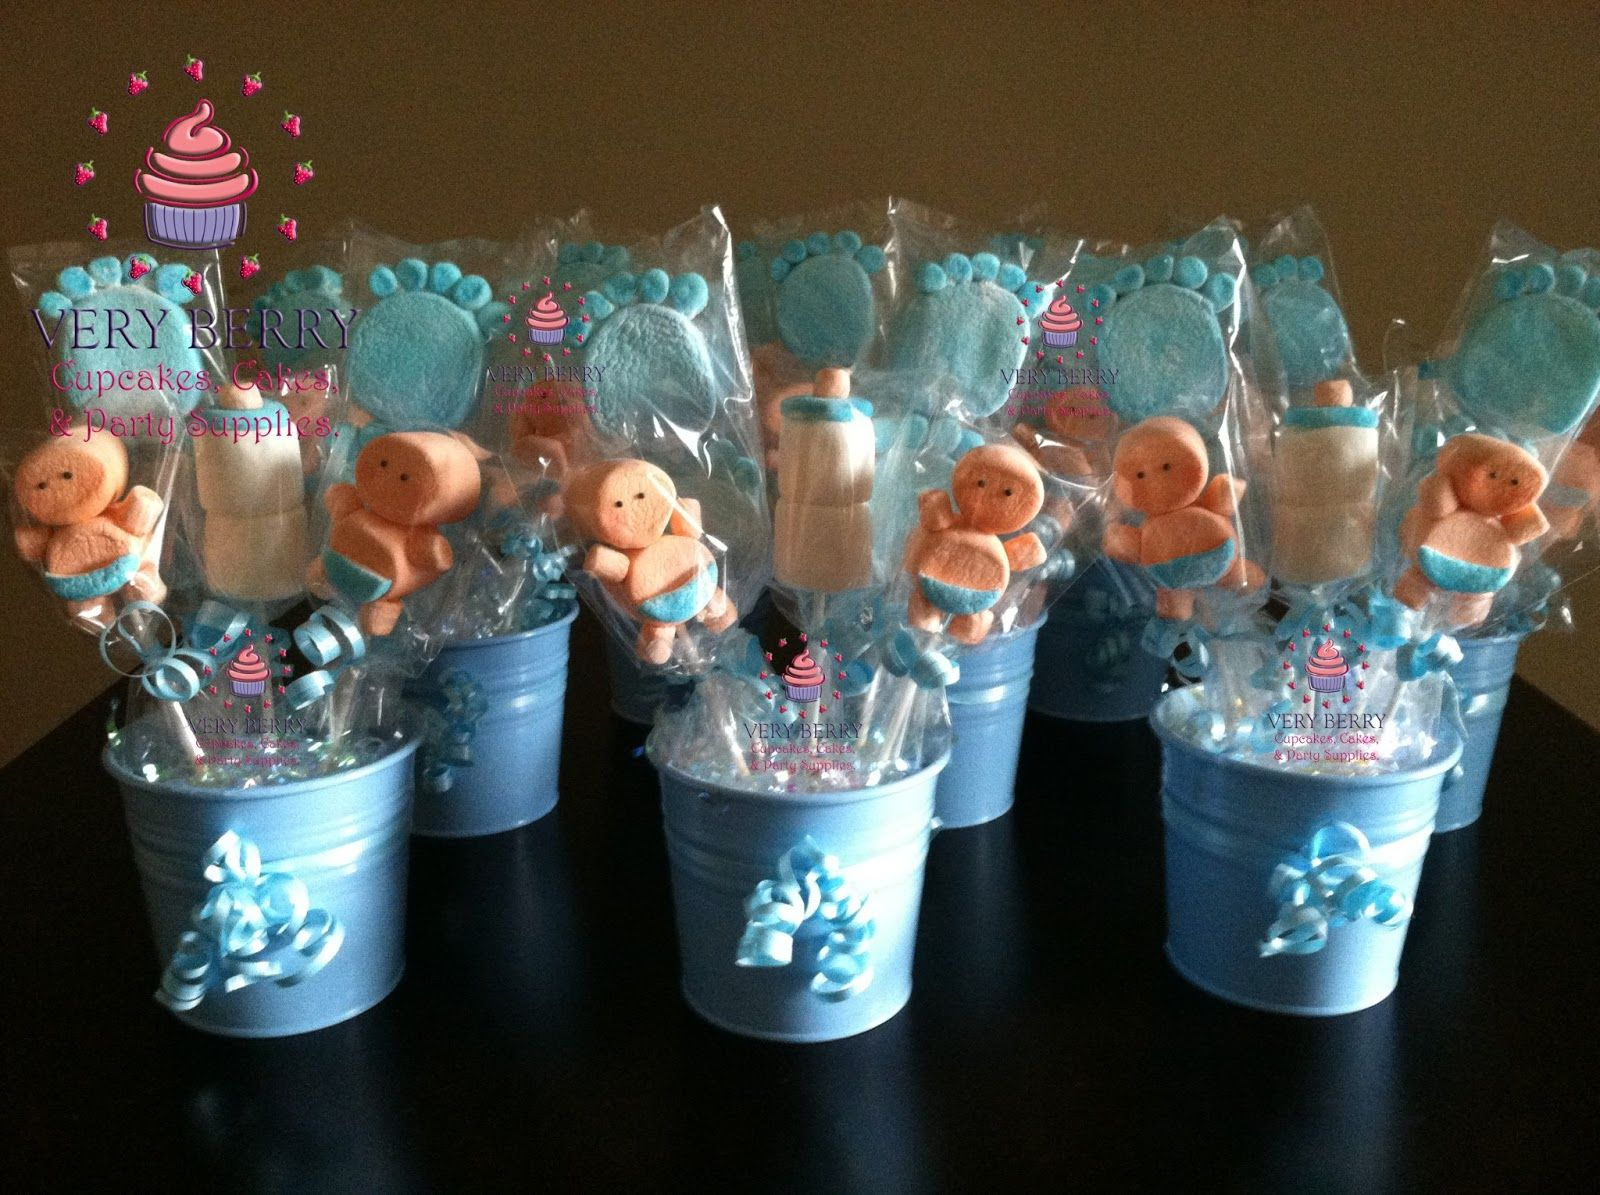 pinterest table centerpiece ideas baby shower veryberry cupcakes boy baby shower marshmallow